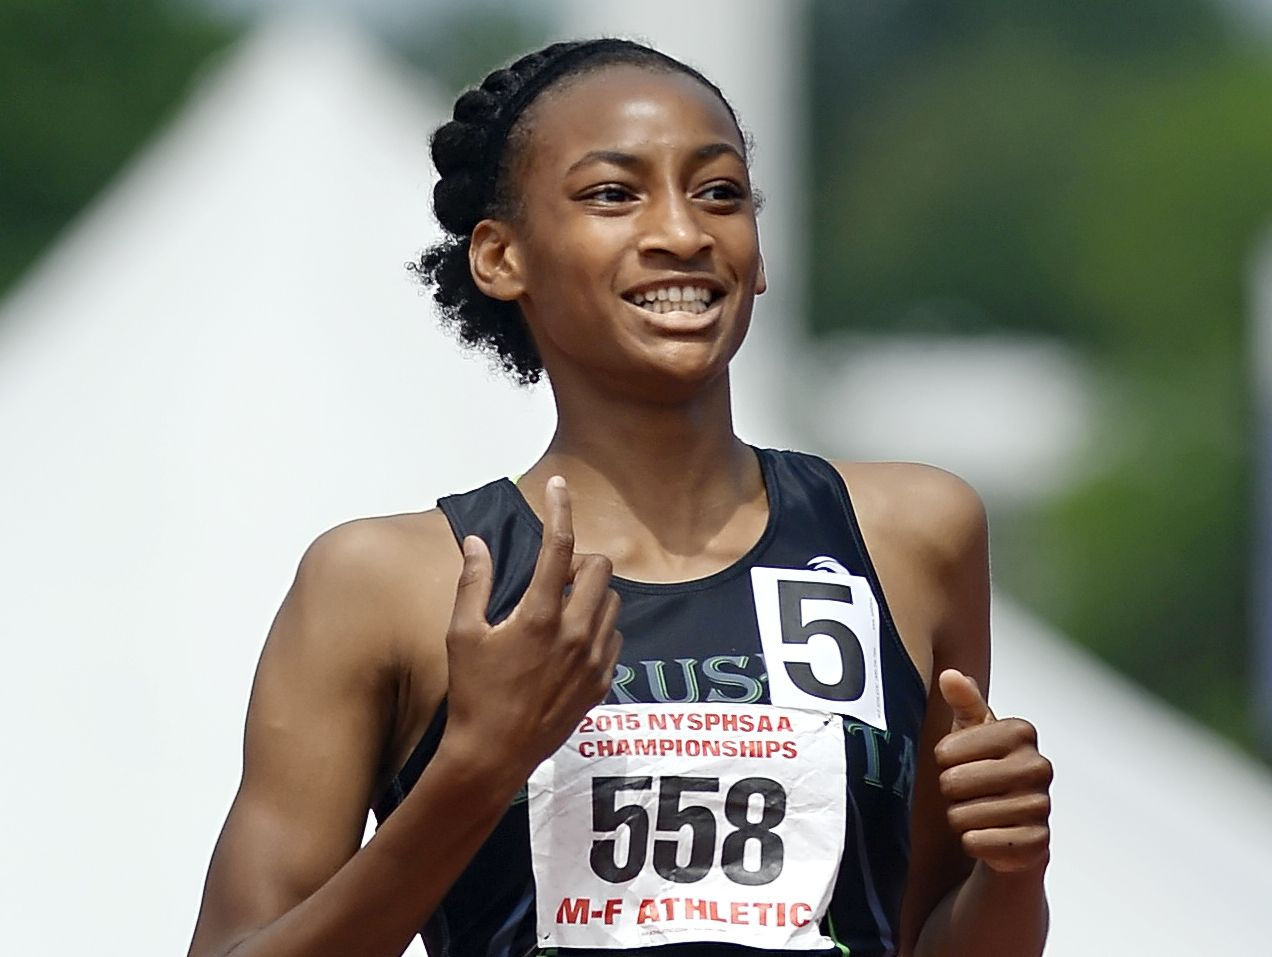 Rush-Henrietta's Sammy Watson won the girls 400 and 1,500 state championships near the end of the last high school outdoor track and field season. Watson later ran at the U.S. Olympic Trials for the games in Rio de Janeiro.